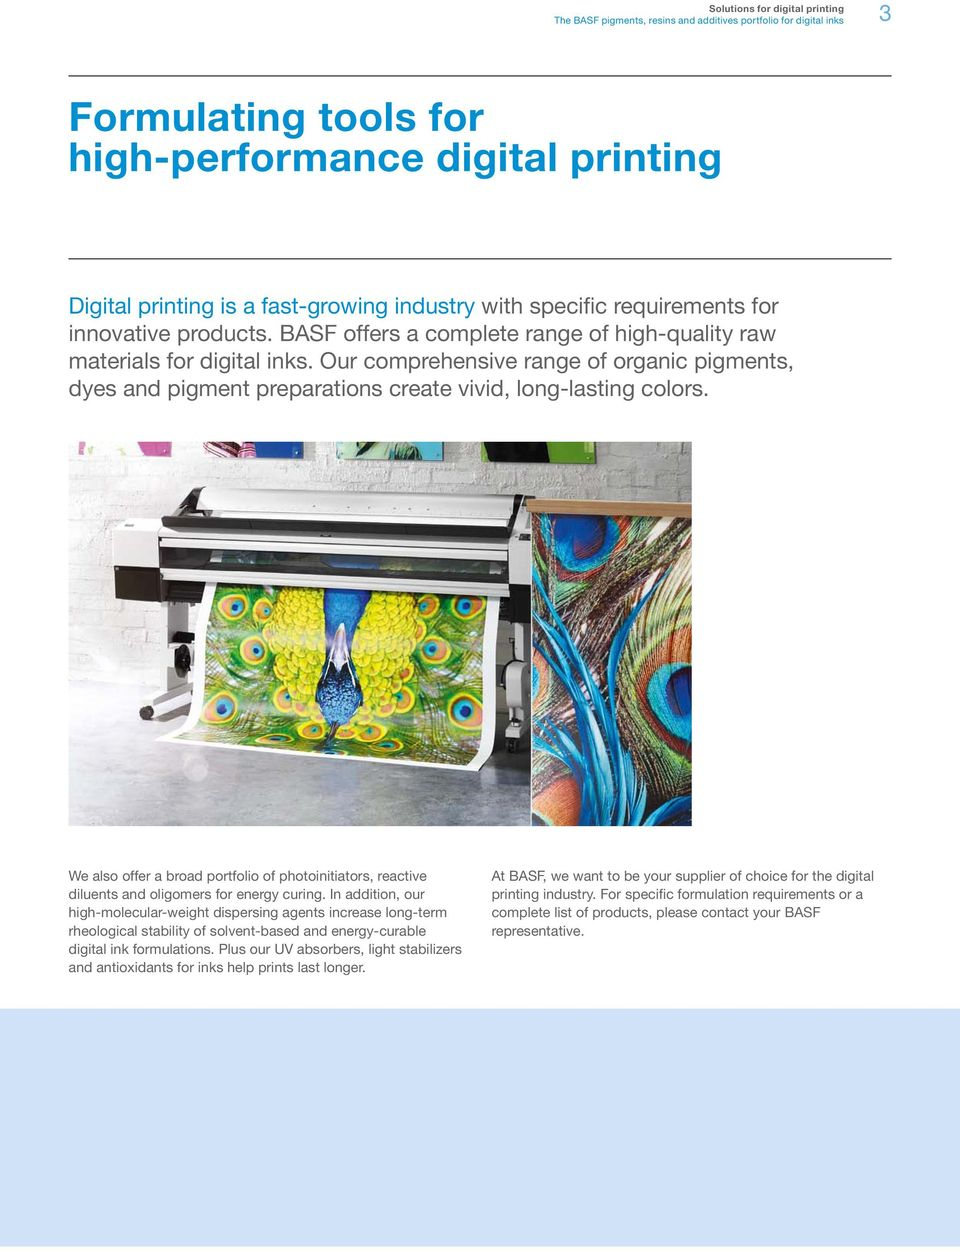 Solutions for digital printing  The BASF pigments, resins and